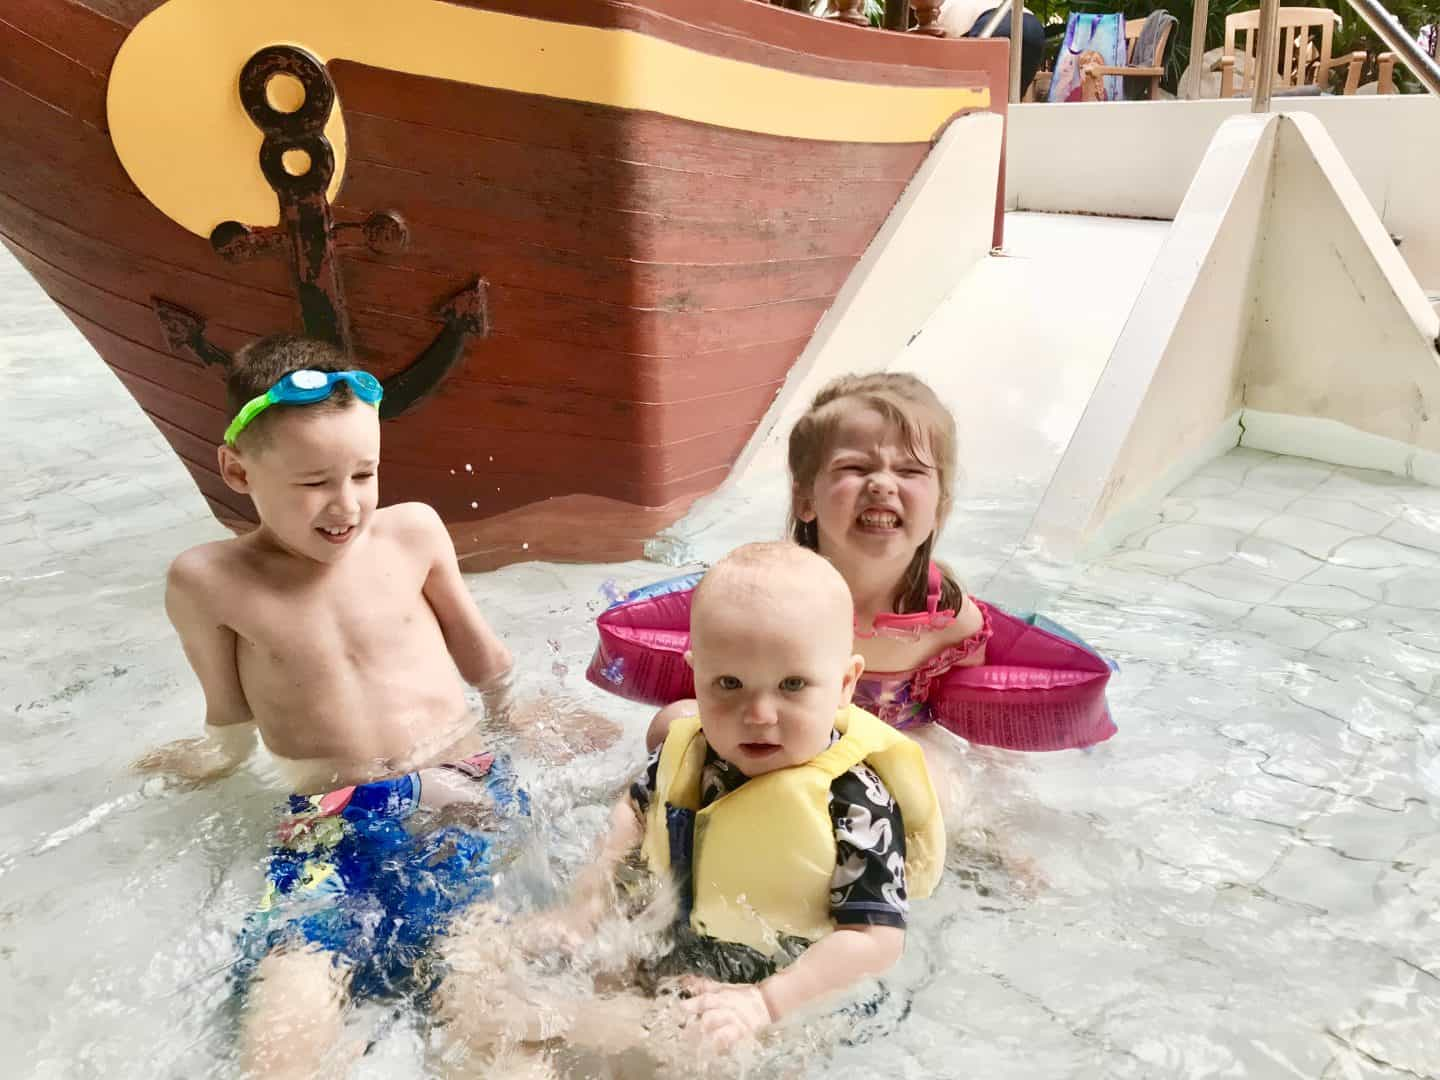 All there children in the baby pool at Center Parcs Sherwood forest